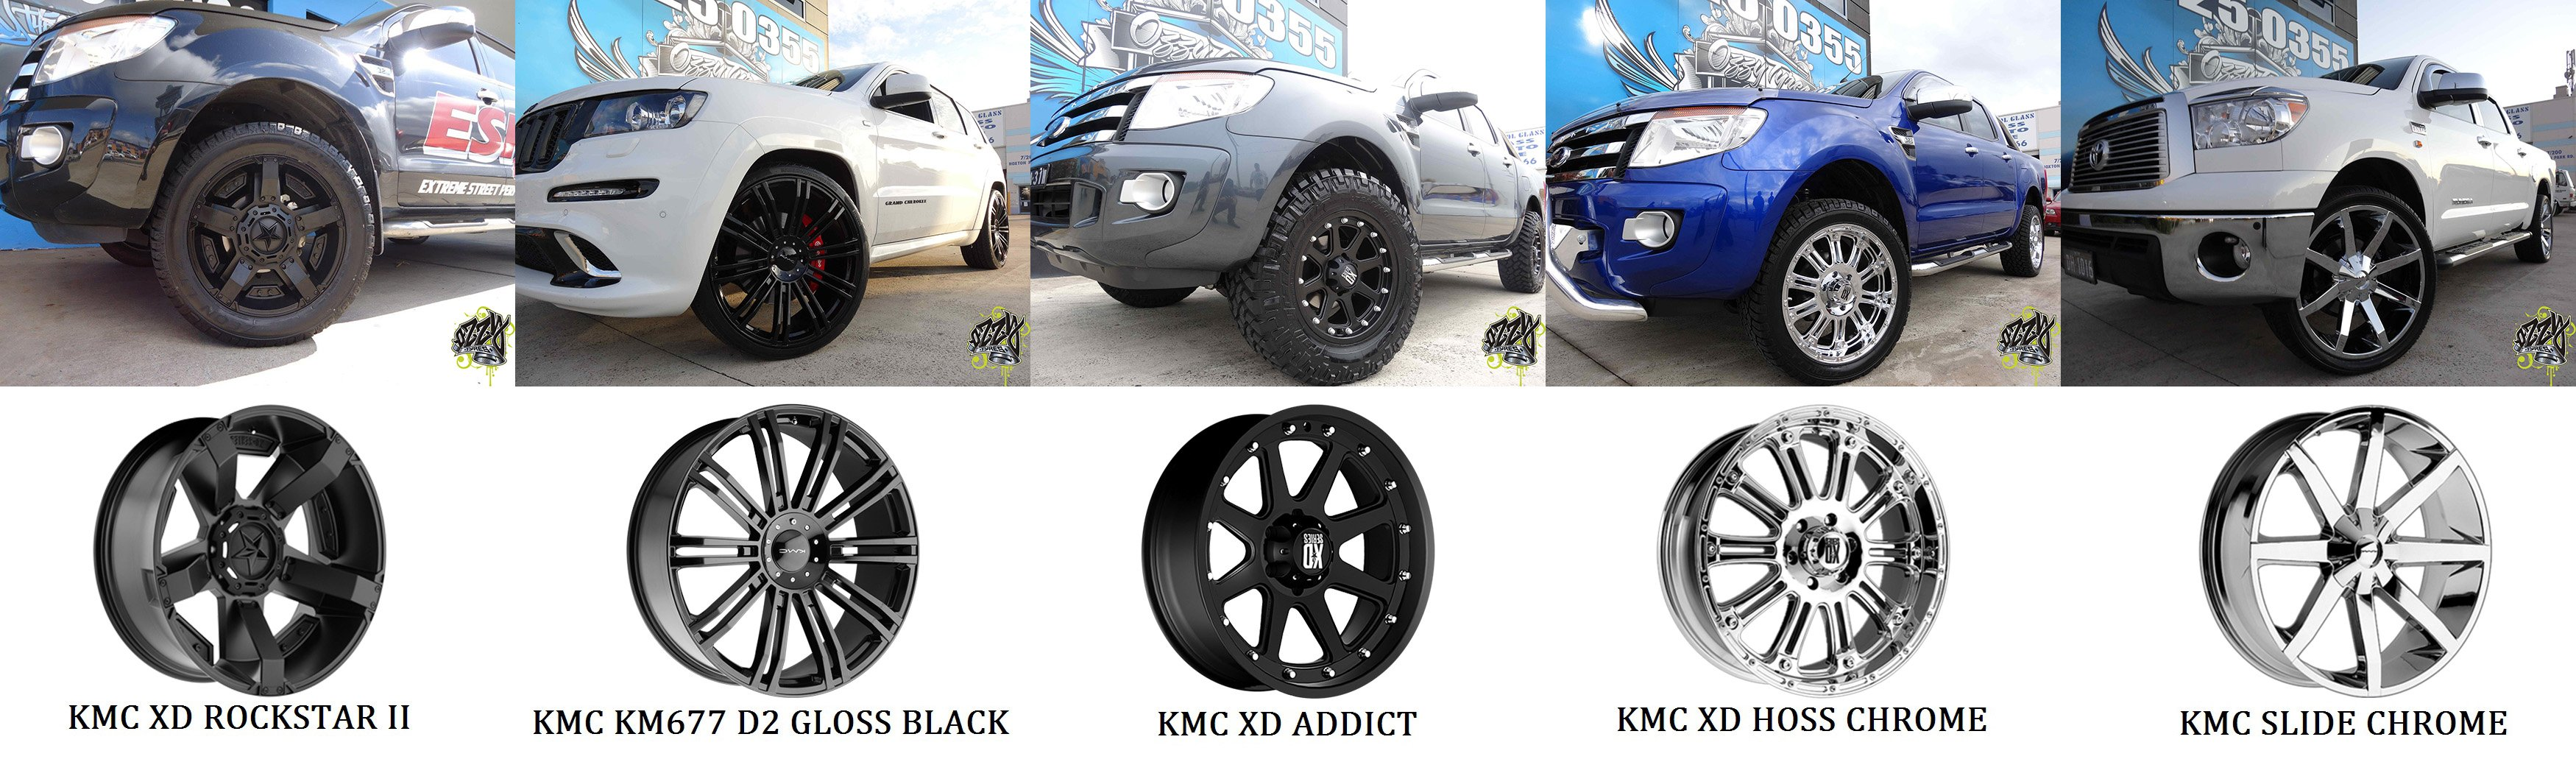 KMC Beadlock Wheels